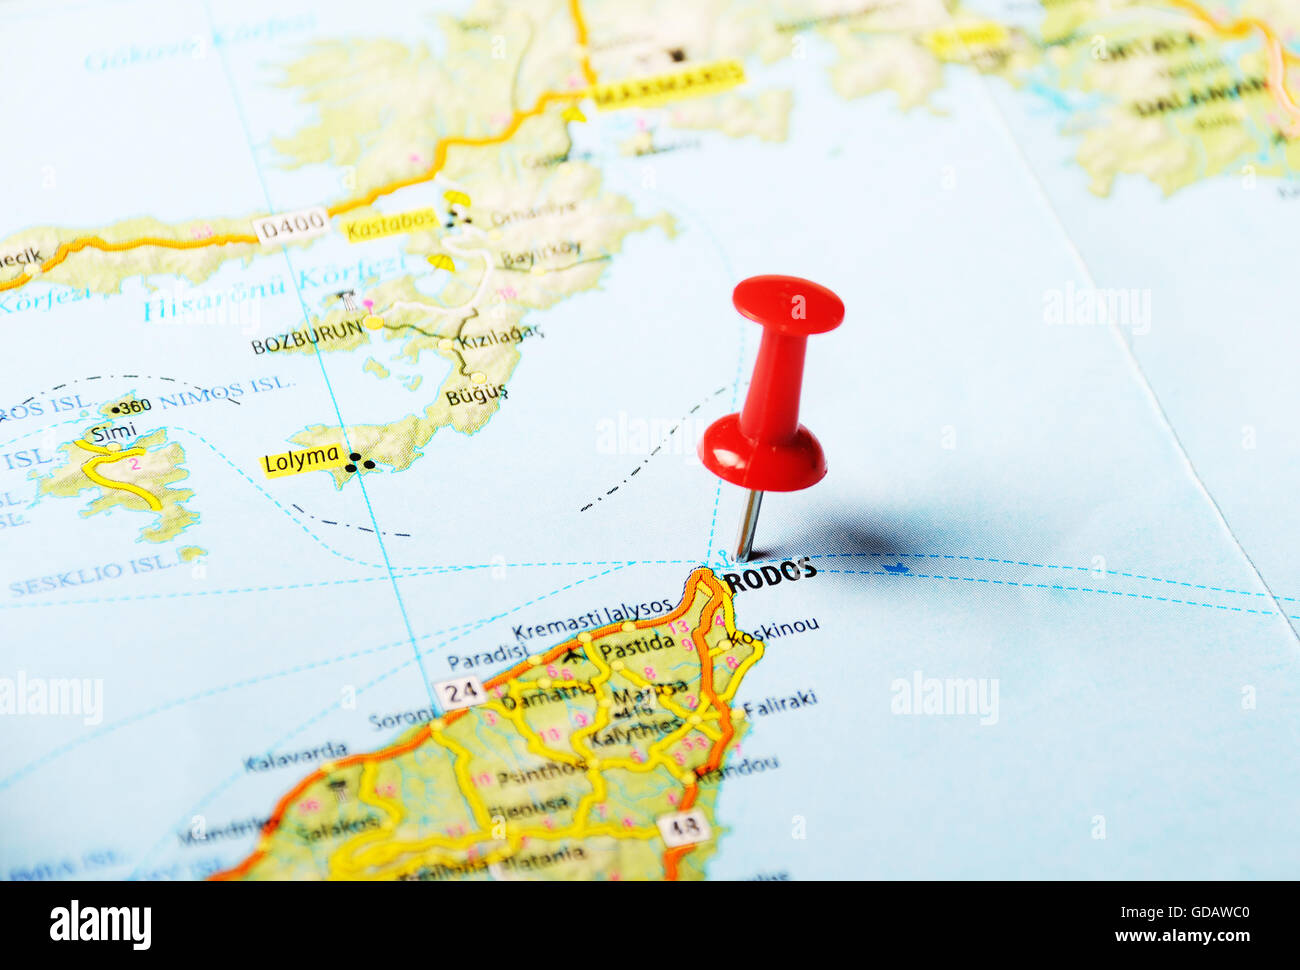 Rhodes Island Greece Map.Close Up Of Rhodes Island Greece Map With Red Pin Travel Stock